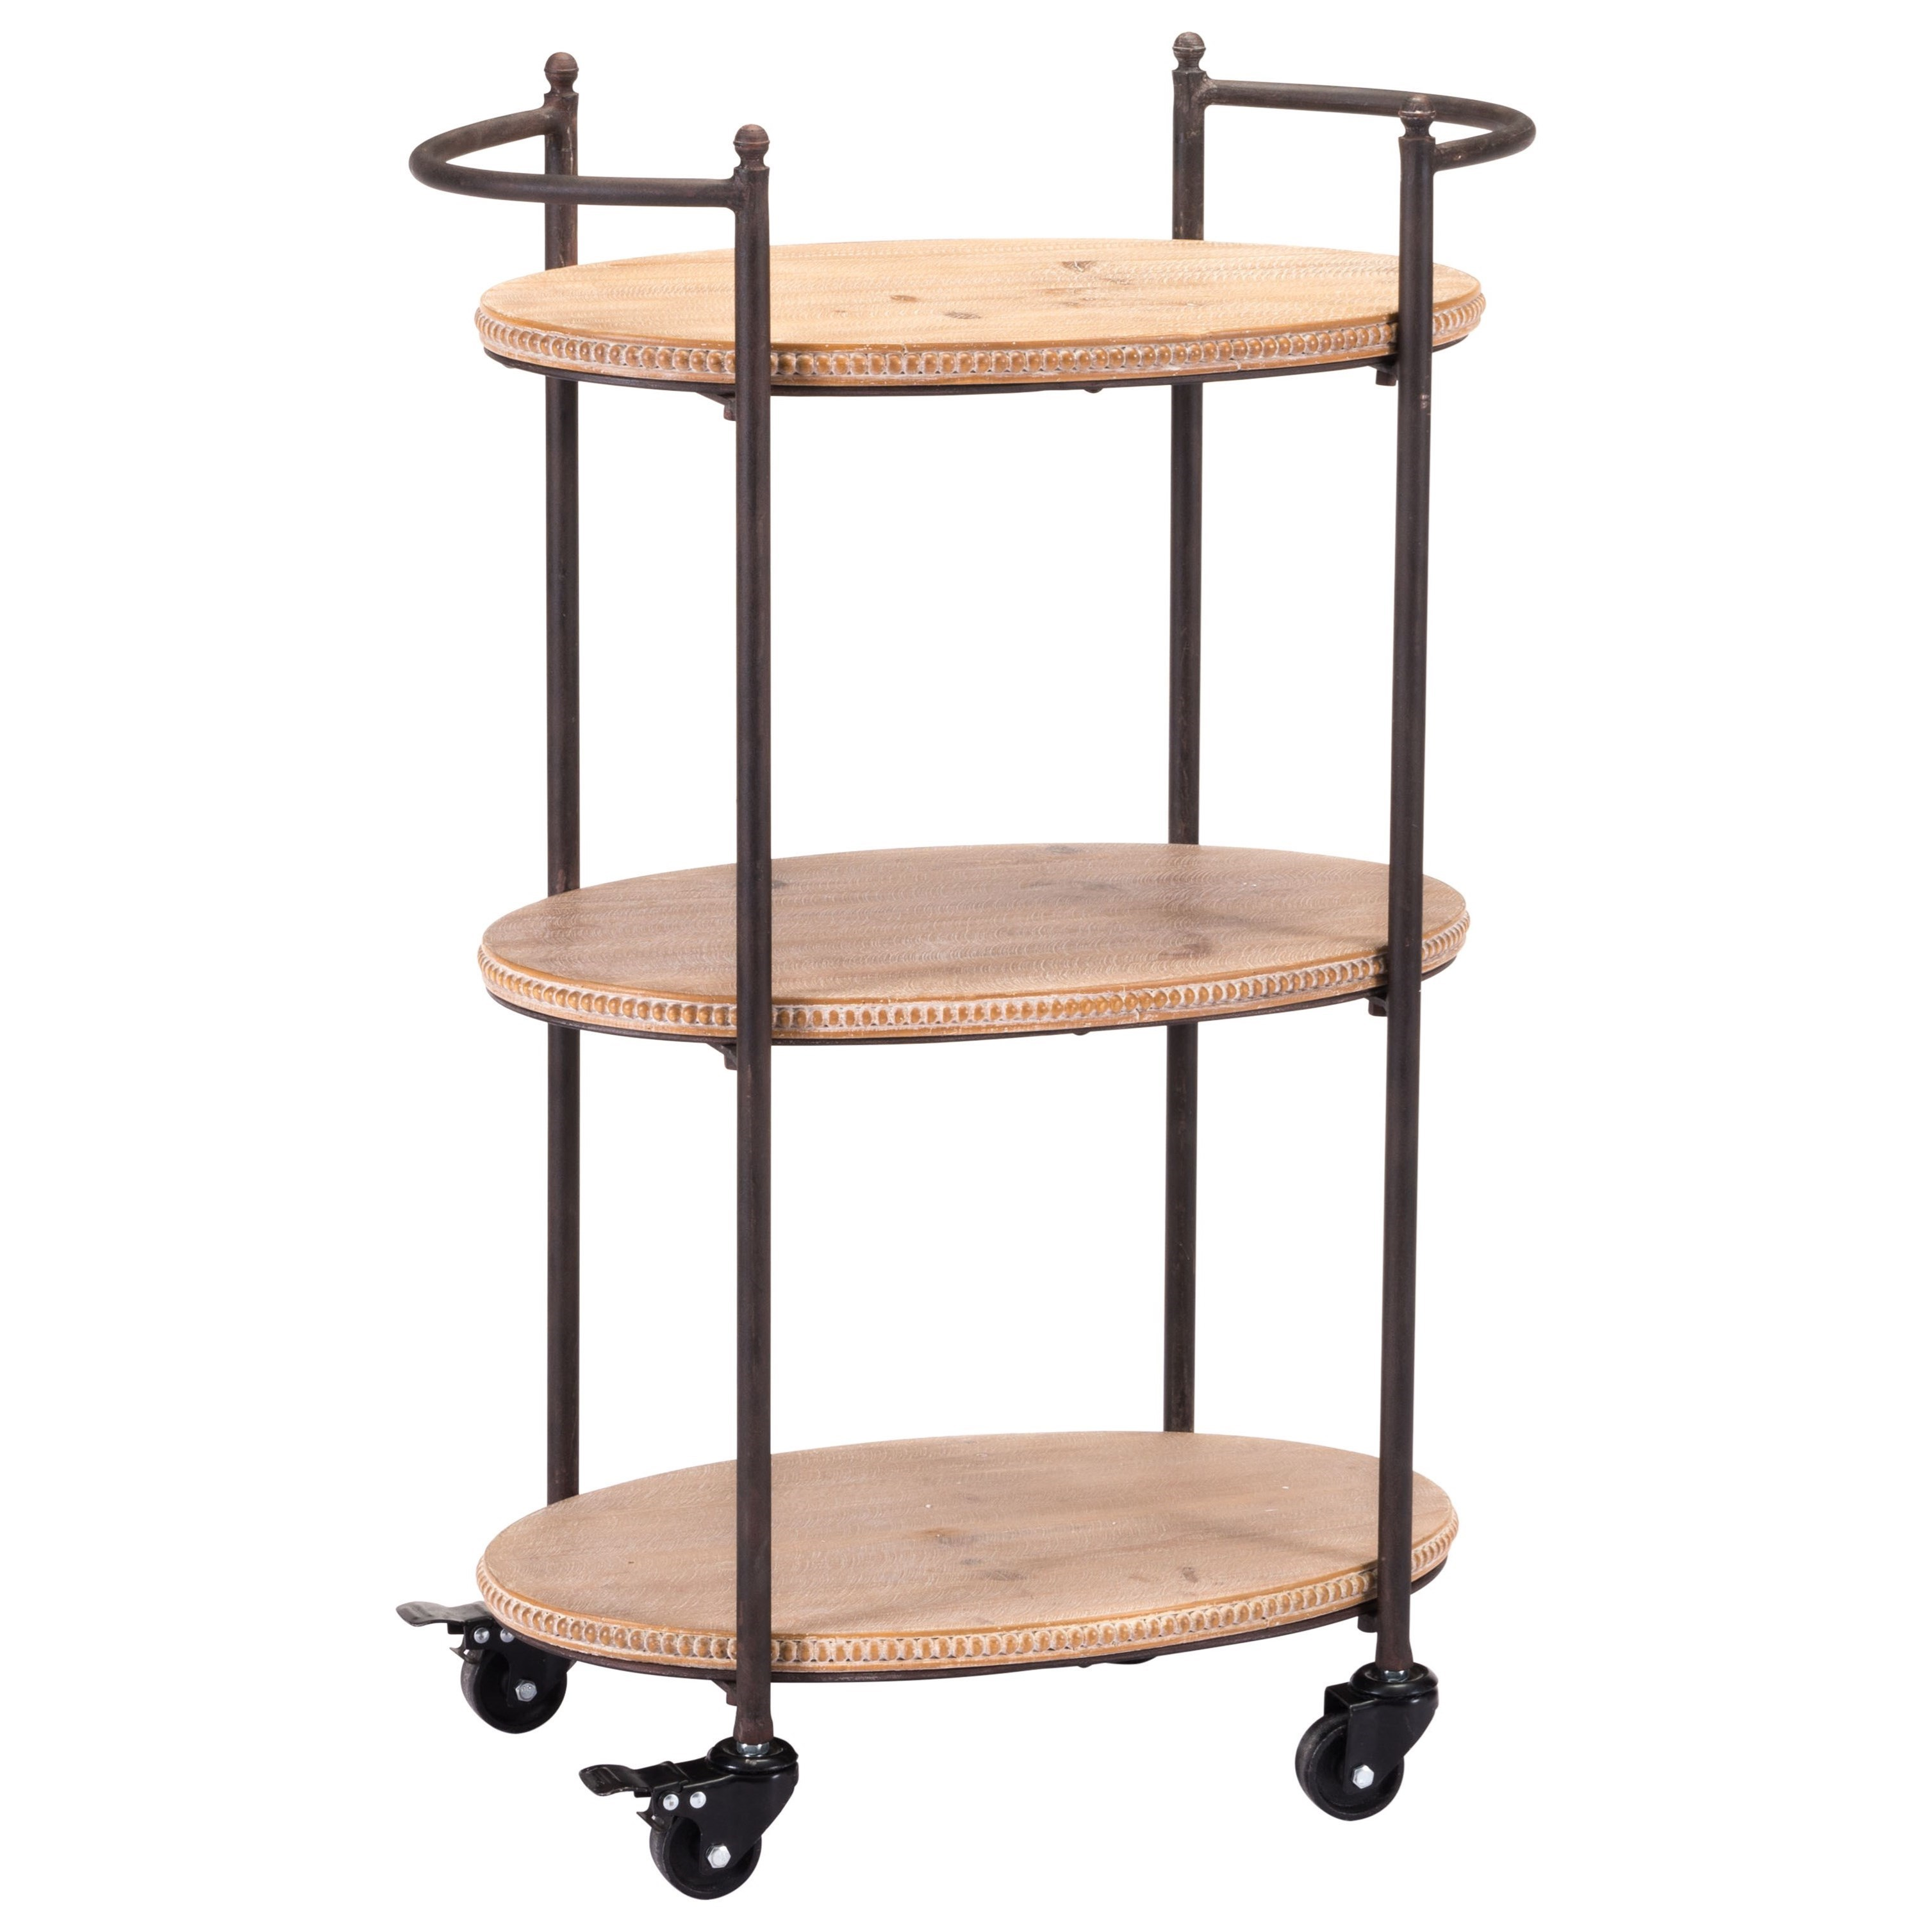 Zuo Accent Tables Tri Level Bar Cart - Item Number: A10992